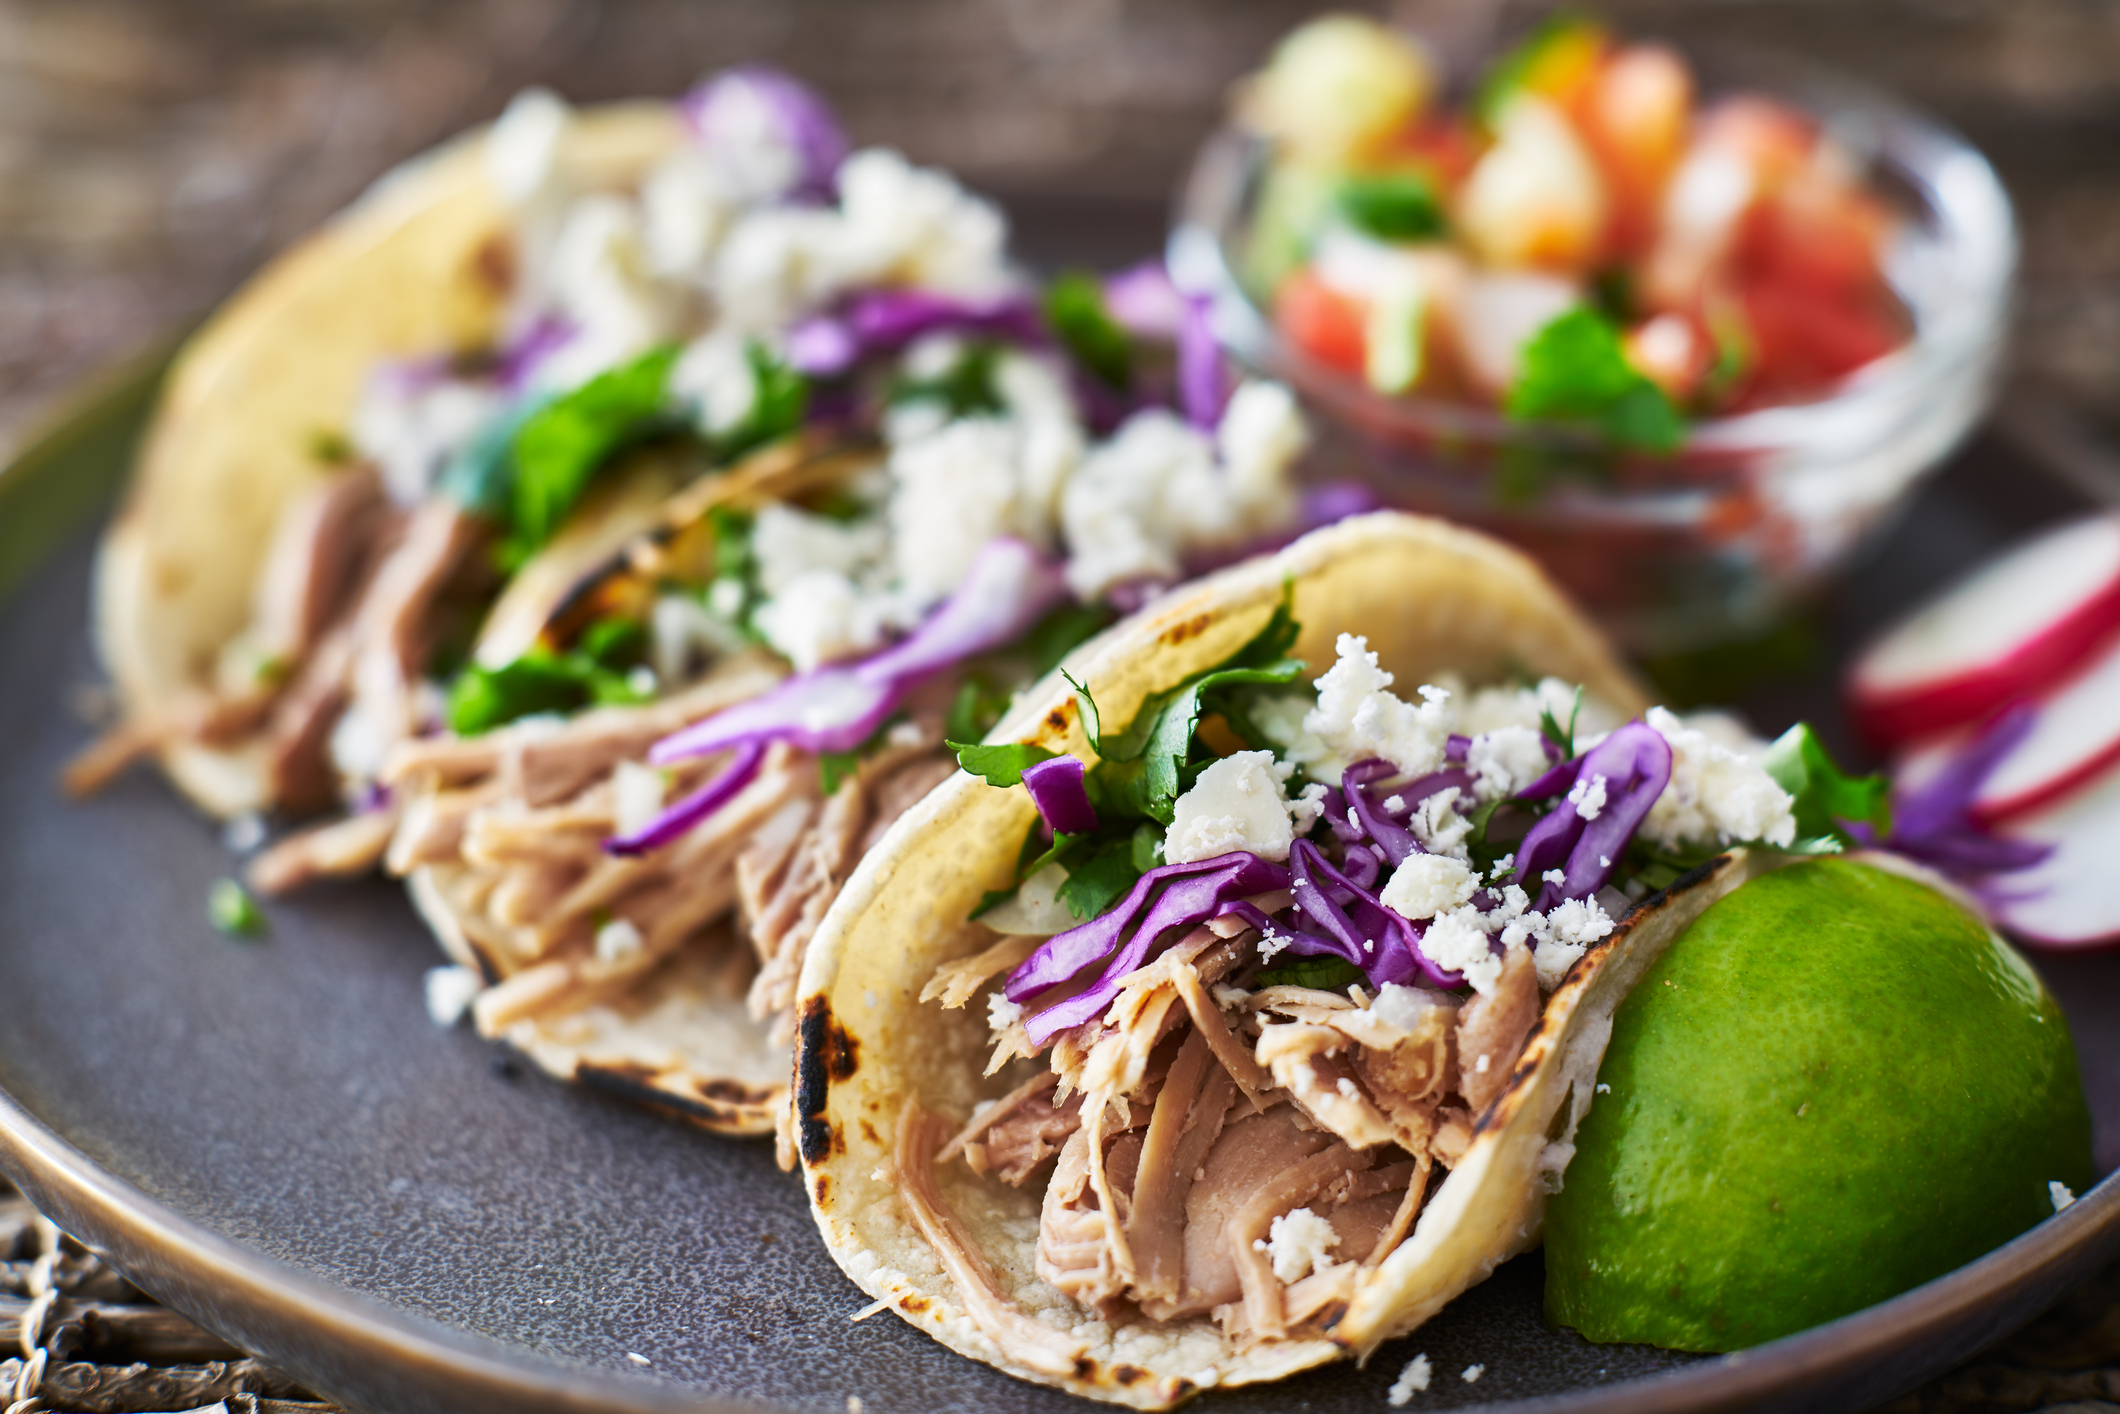 mexican street tacos with seasoned pork carnitas, red cabbage and queso fresco cheese